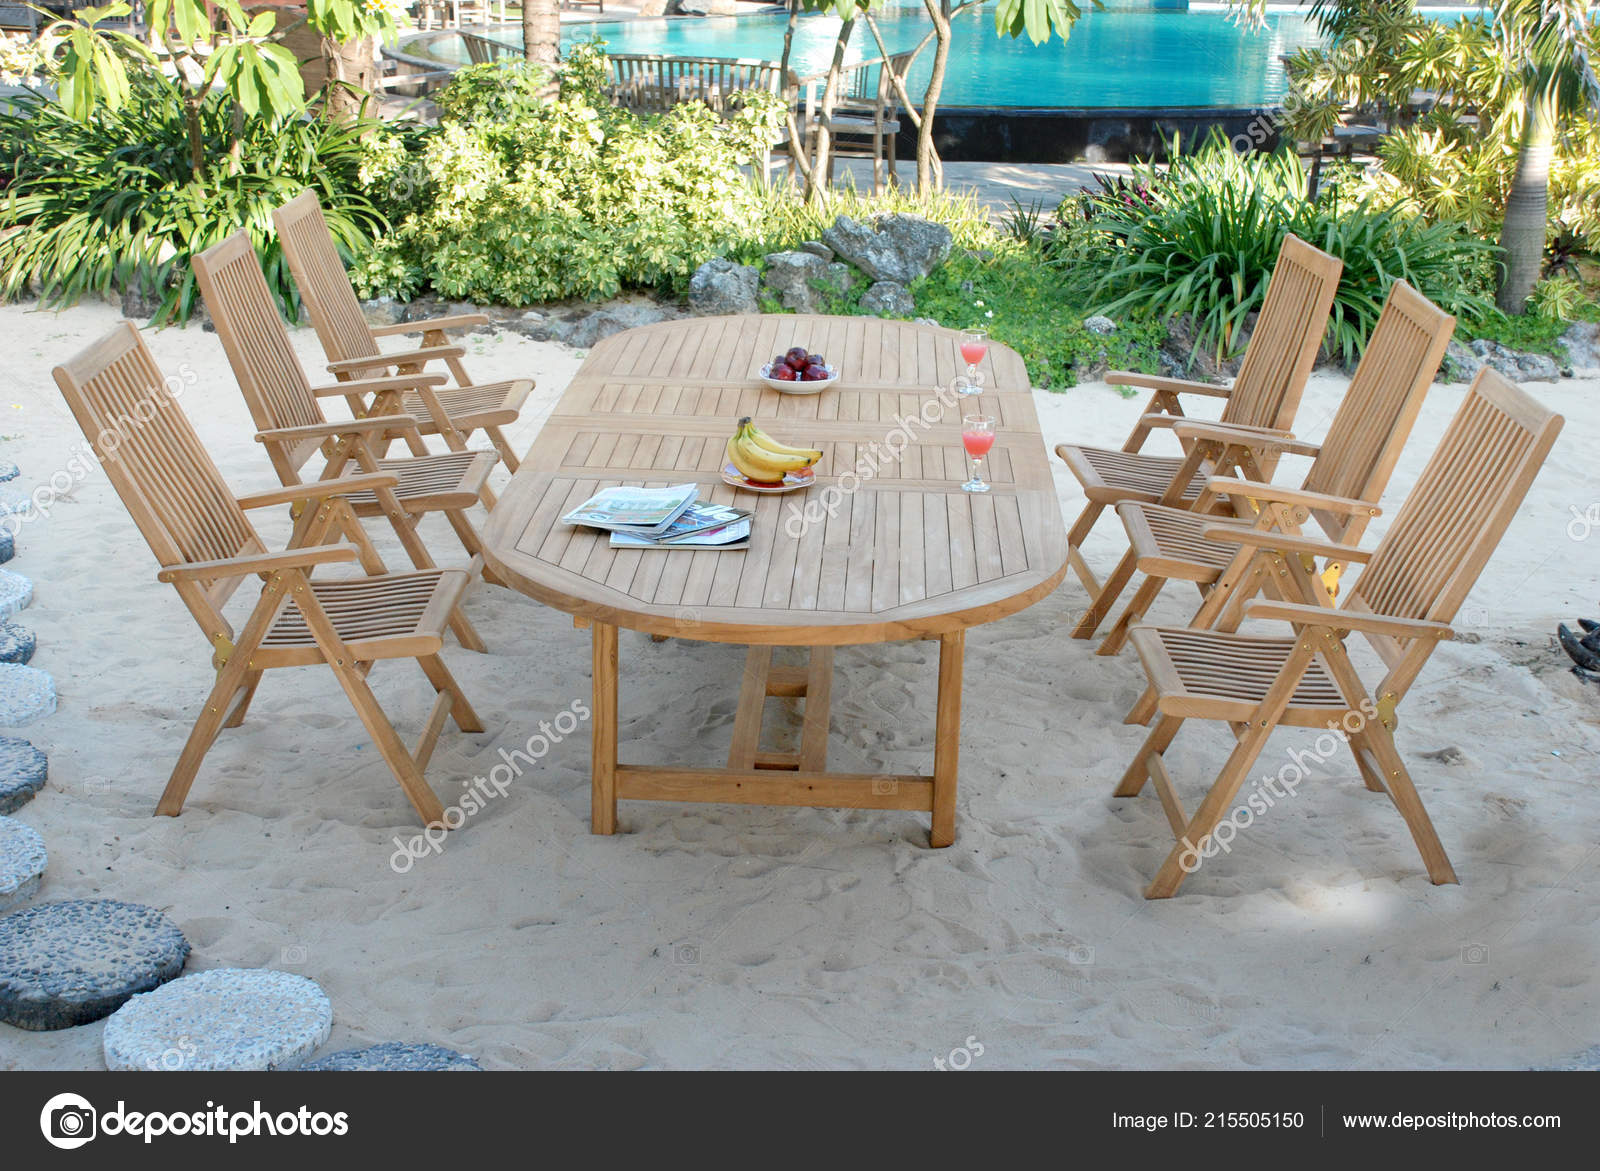 Teak Garden Furniture Outdoor Teak Garden Furniture Folding Chairs Table Stock Photo C Logonesia 215505150